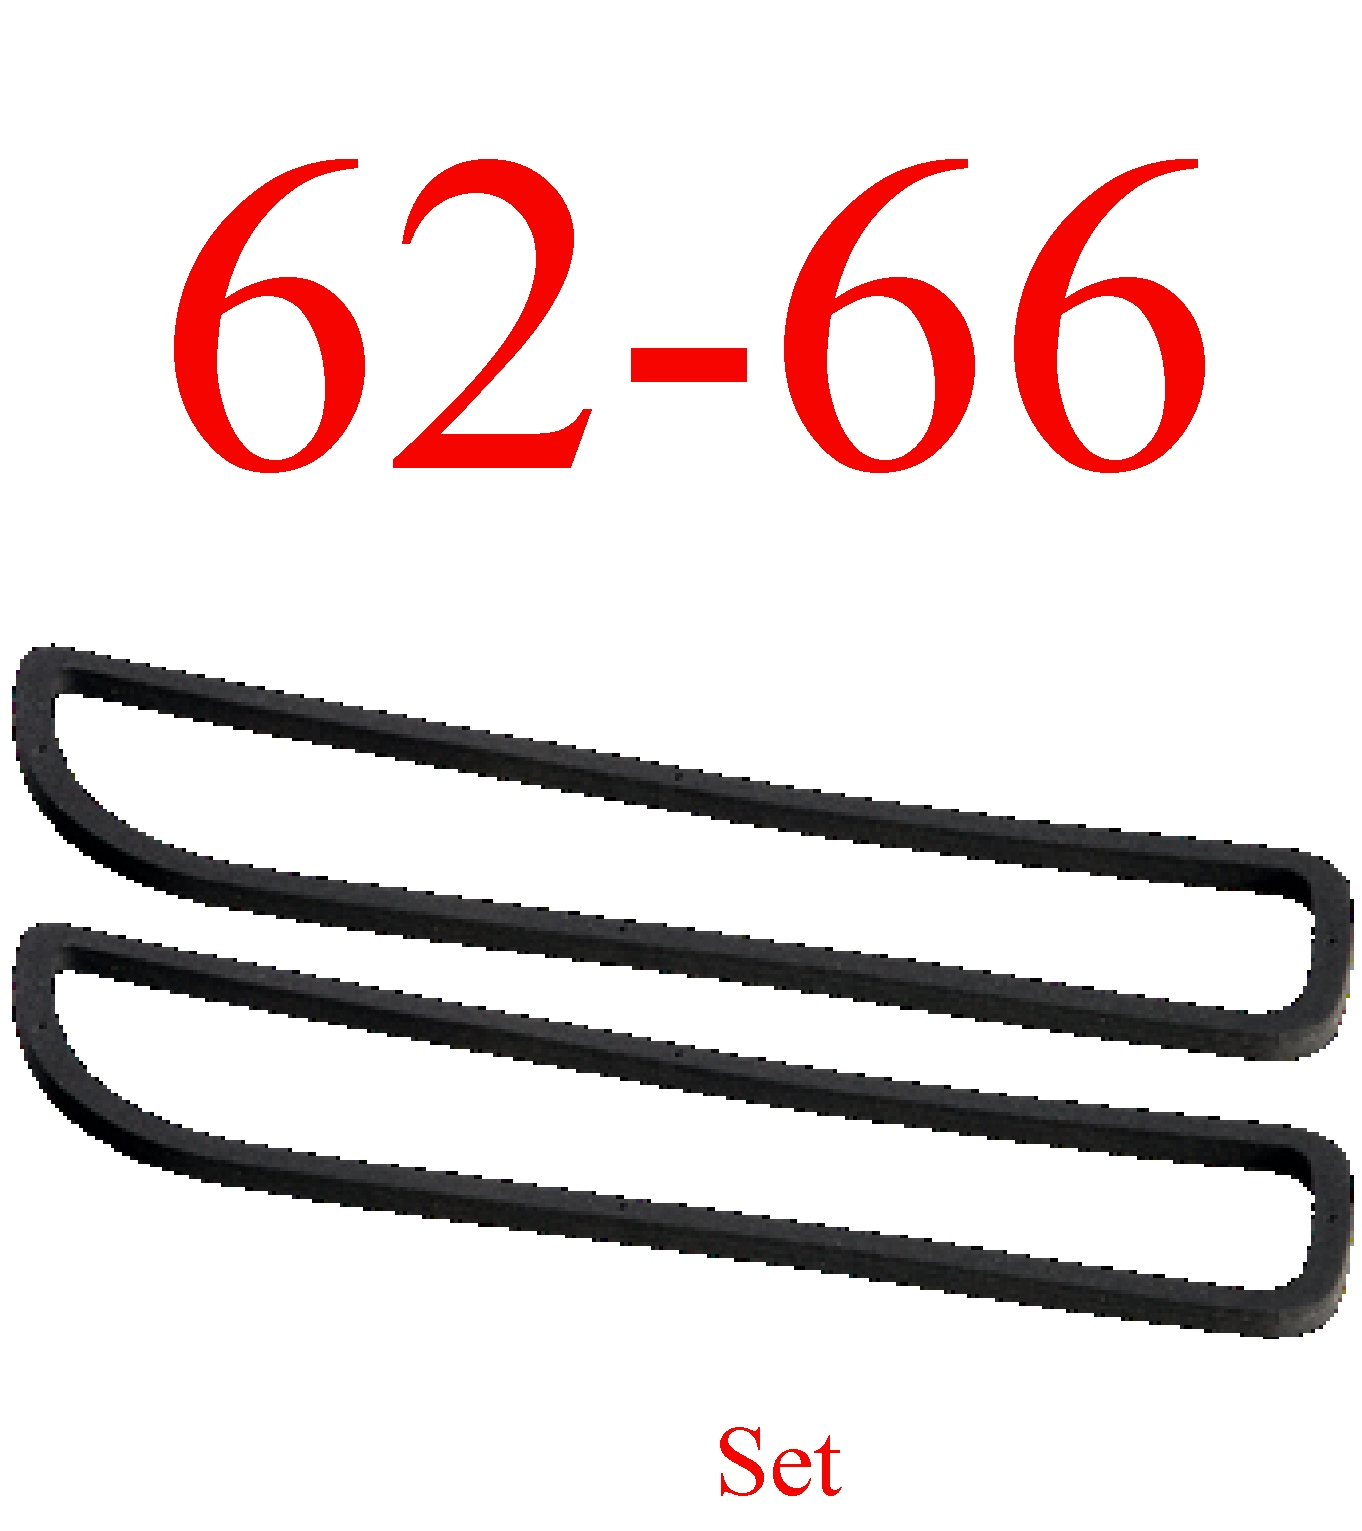 62-66 Chevy Park Light Gasket Set